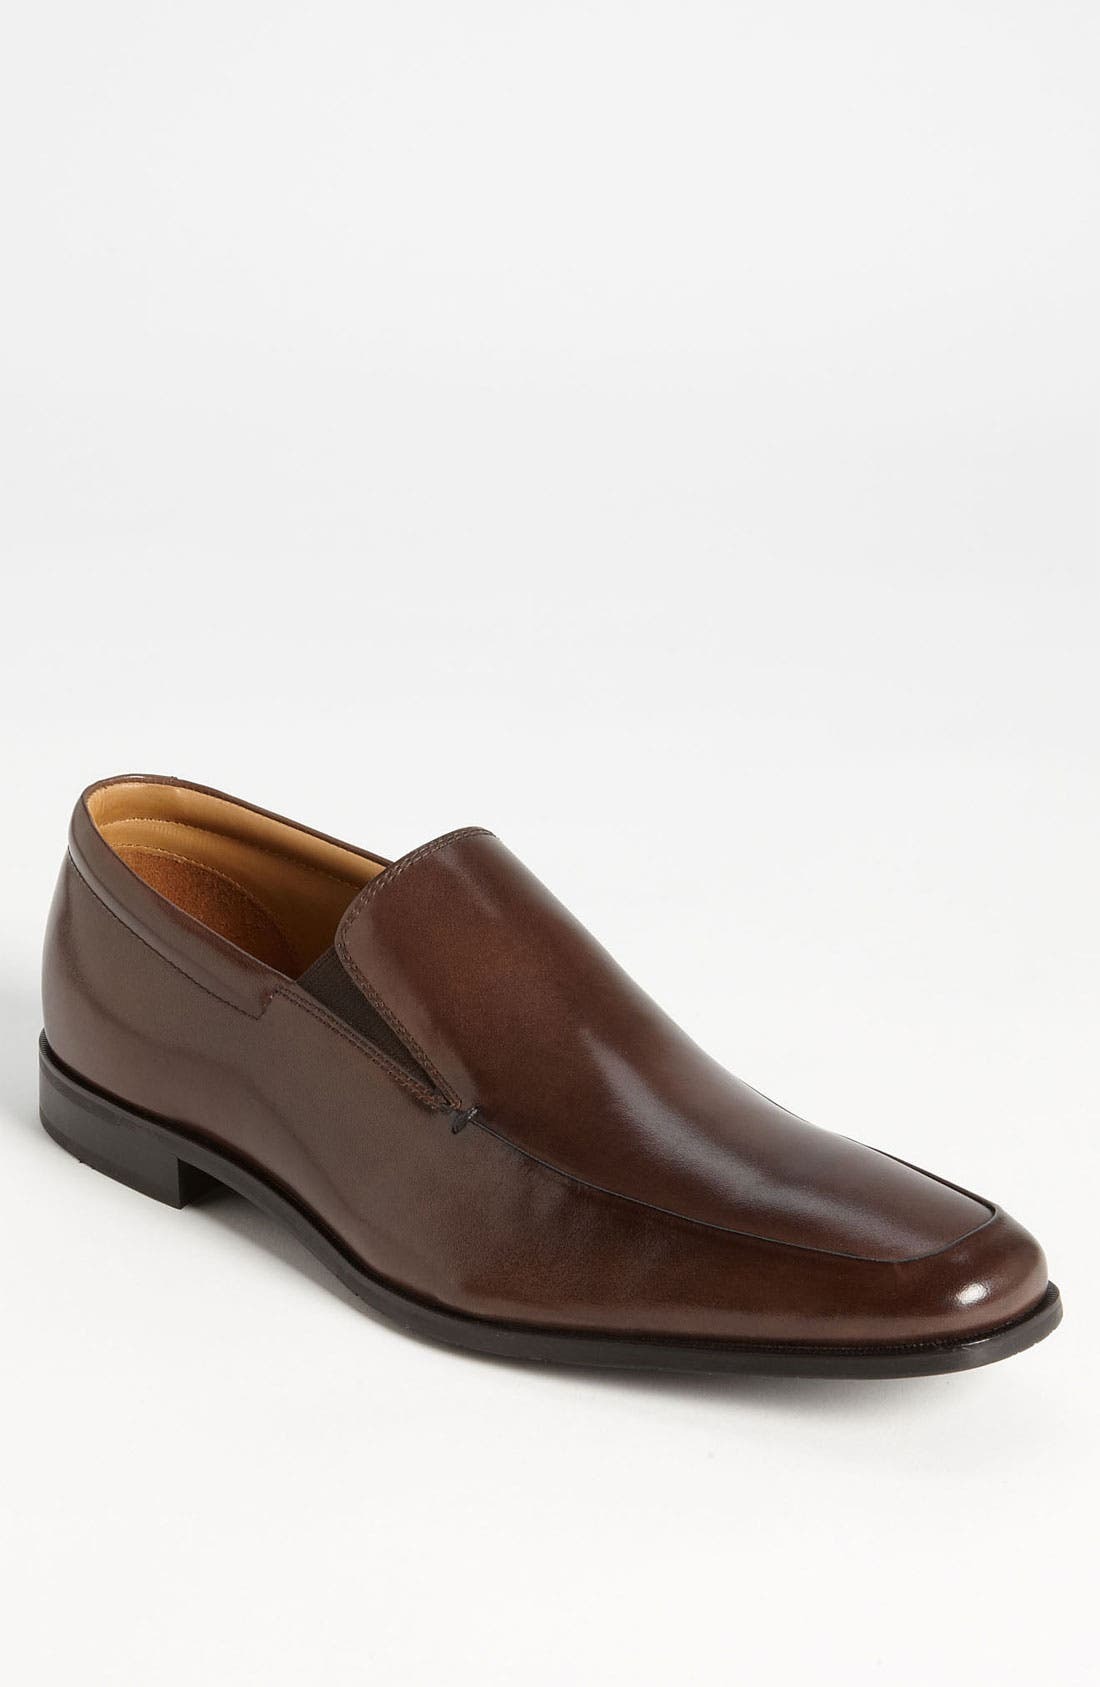 'Elliot' Venetian Loafer,                         Main,                         color, BROWN LEATHER